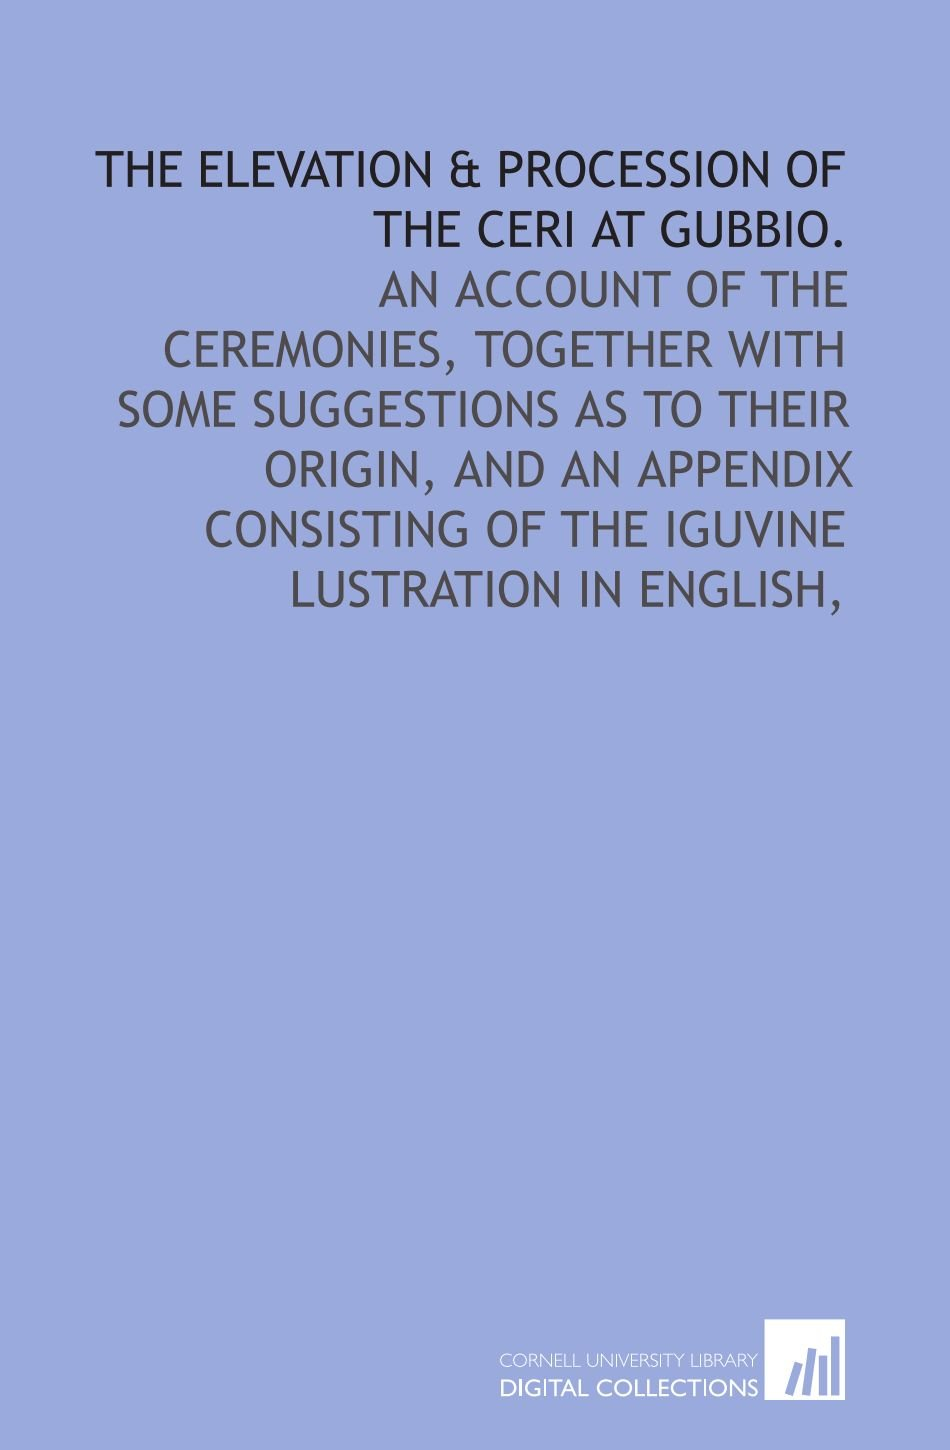 Download The elevation & procession of the Ceri at Gubbio.: An account of the ceremonies, together with some suggestions as to their origin, and an appendix consisting of the Iguvine lustration in English, ebook